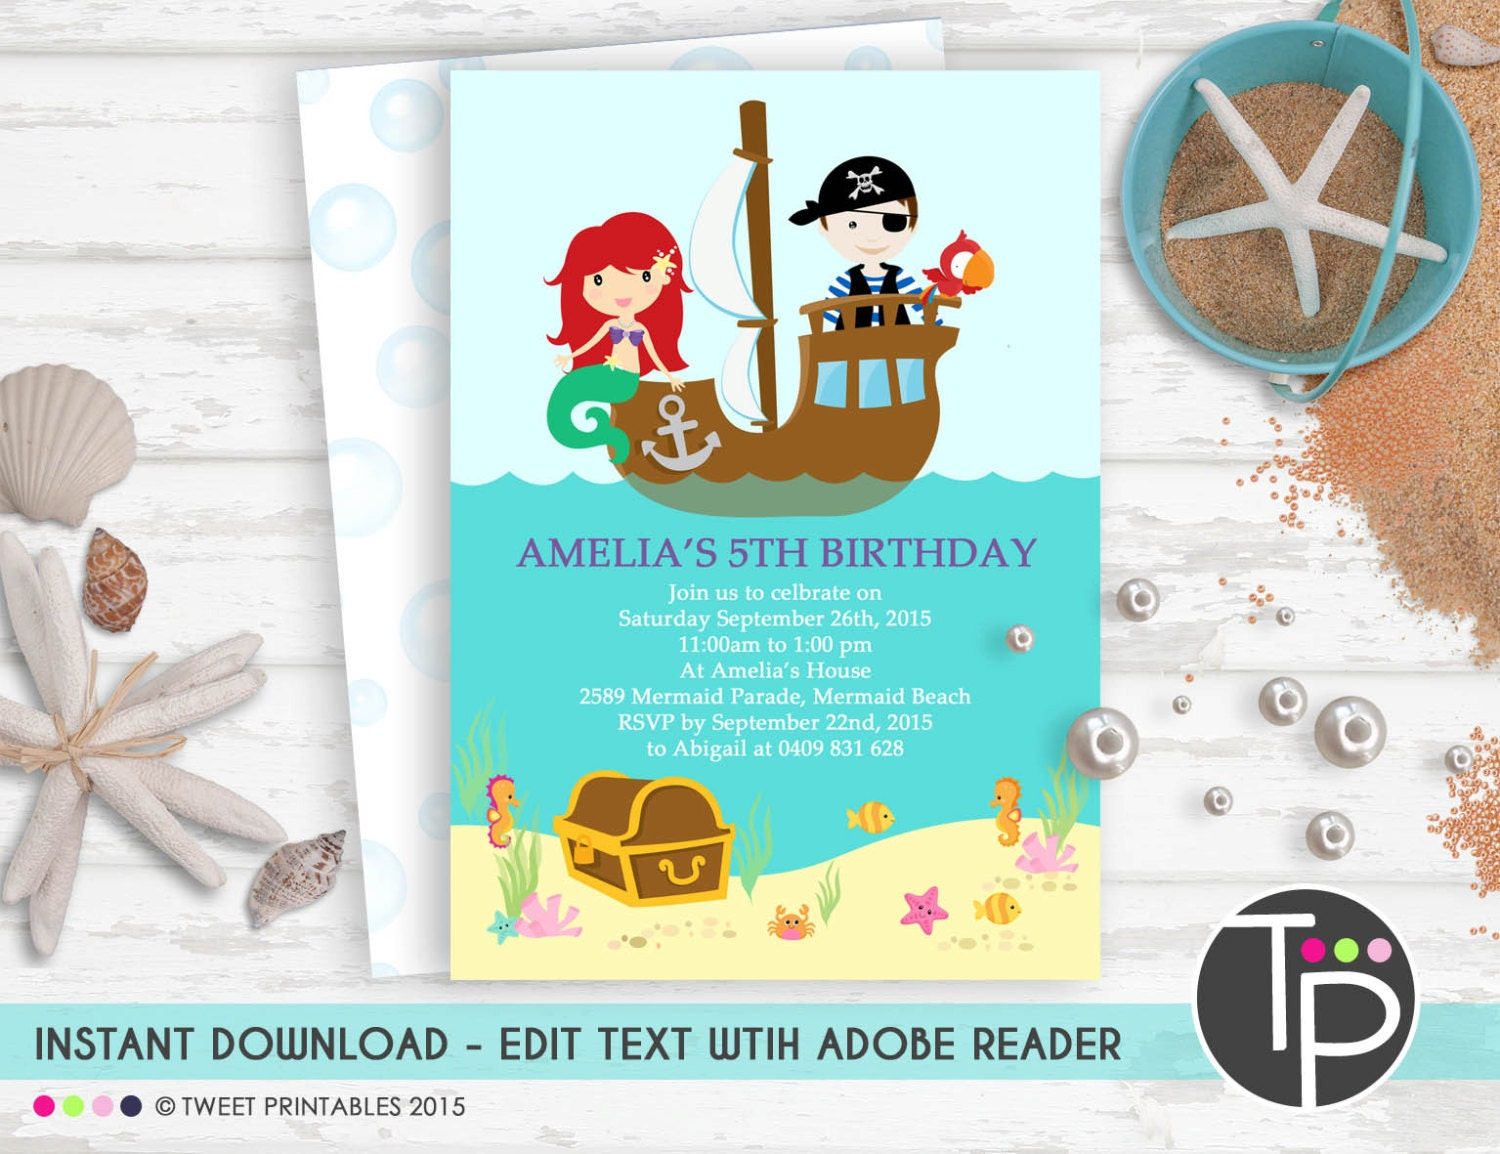 Pirate party invite – Pirate Party Invites